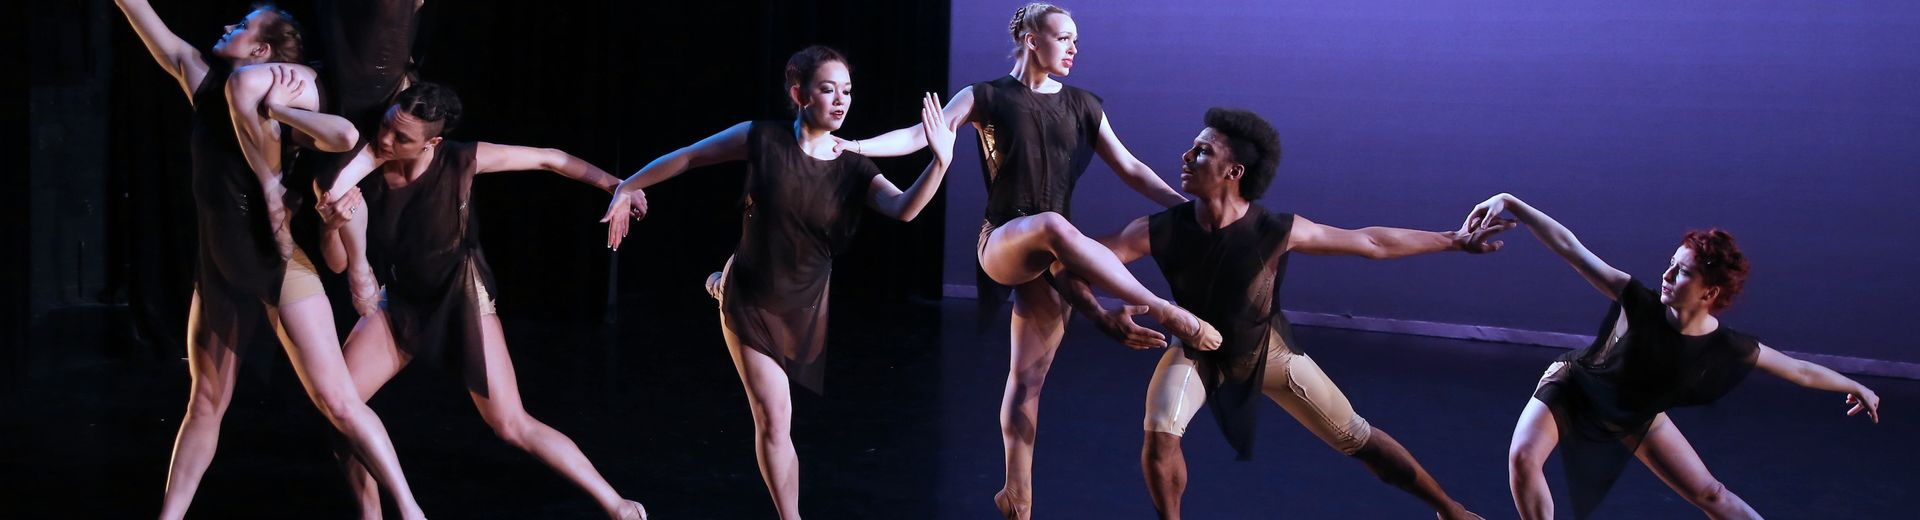 Dancers perform on a stage.